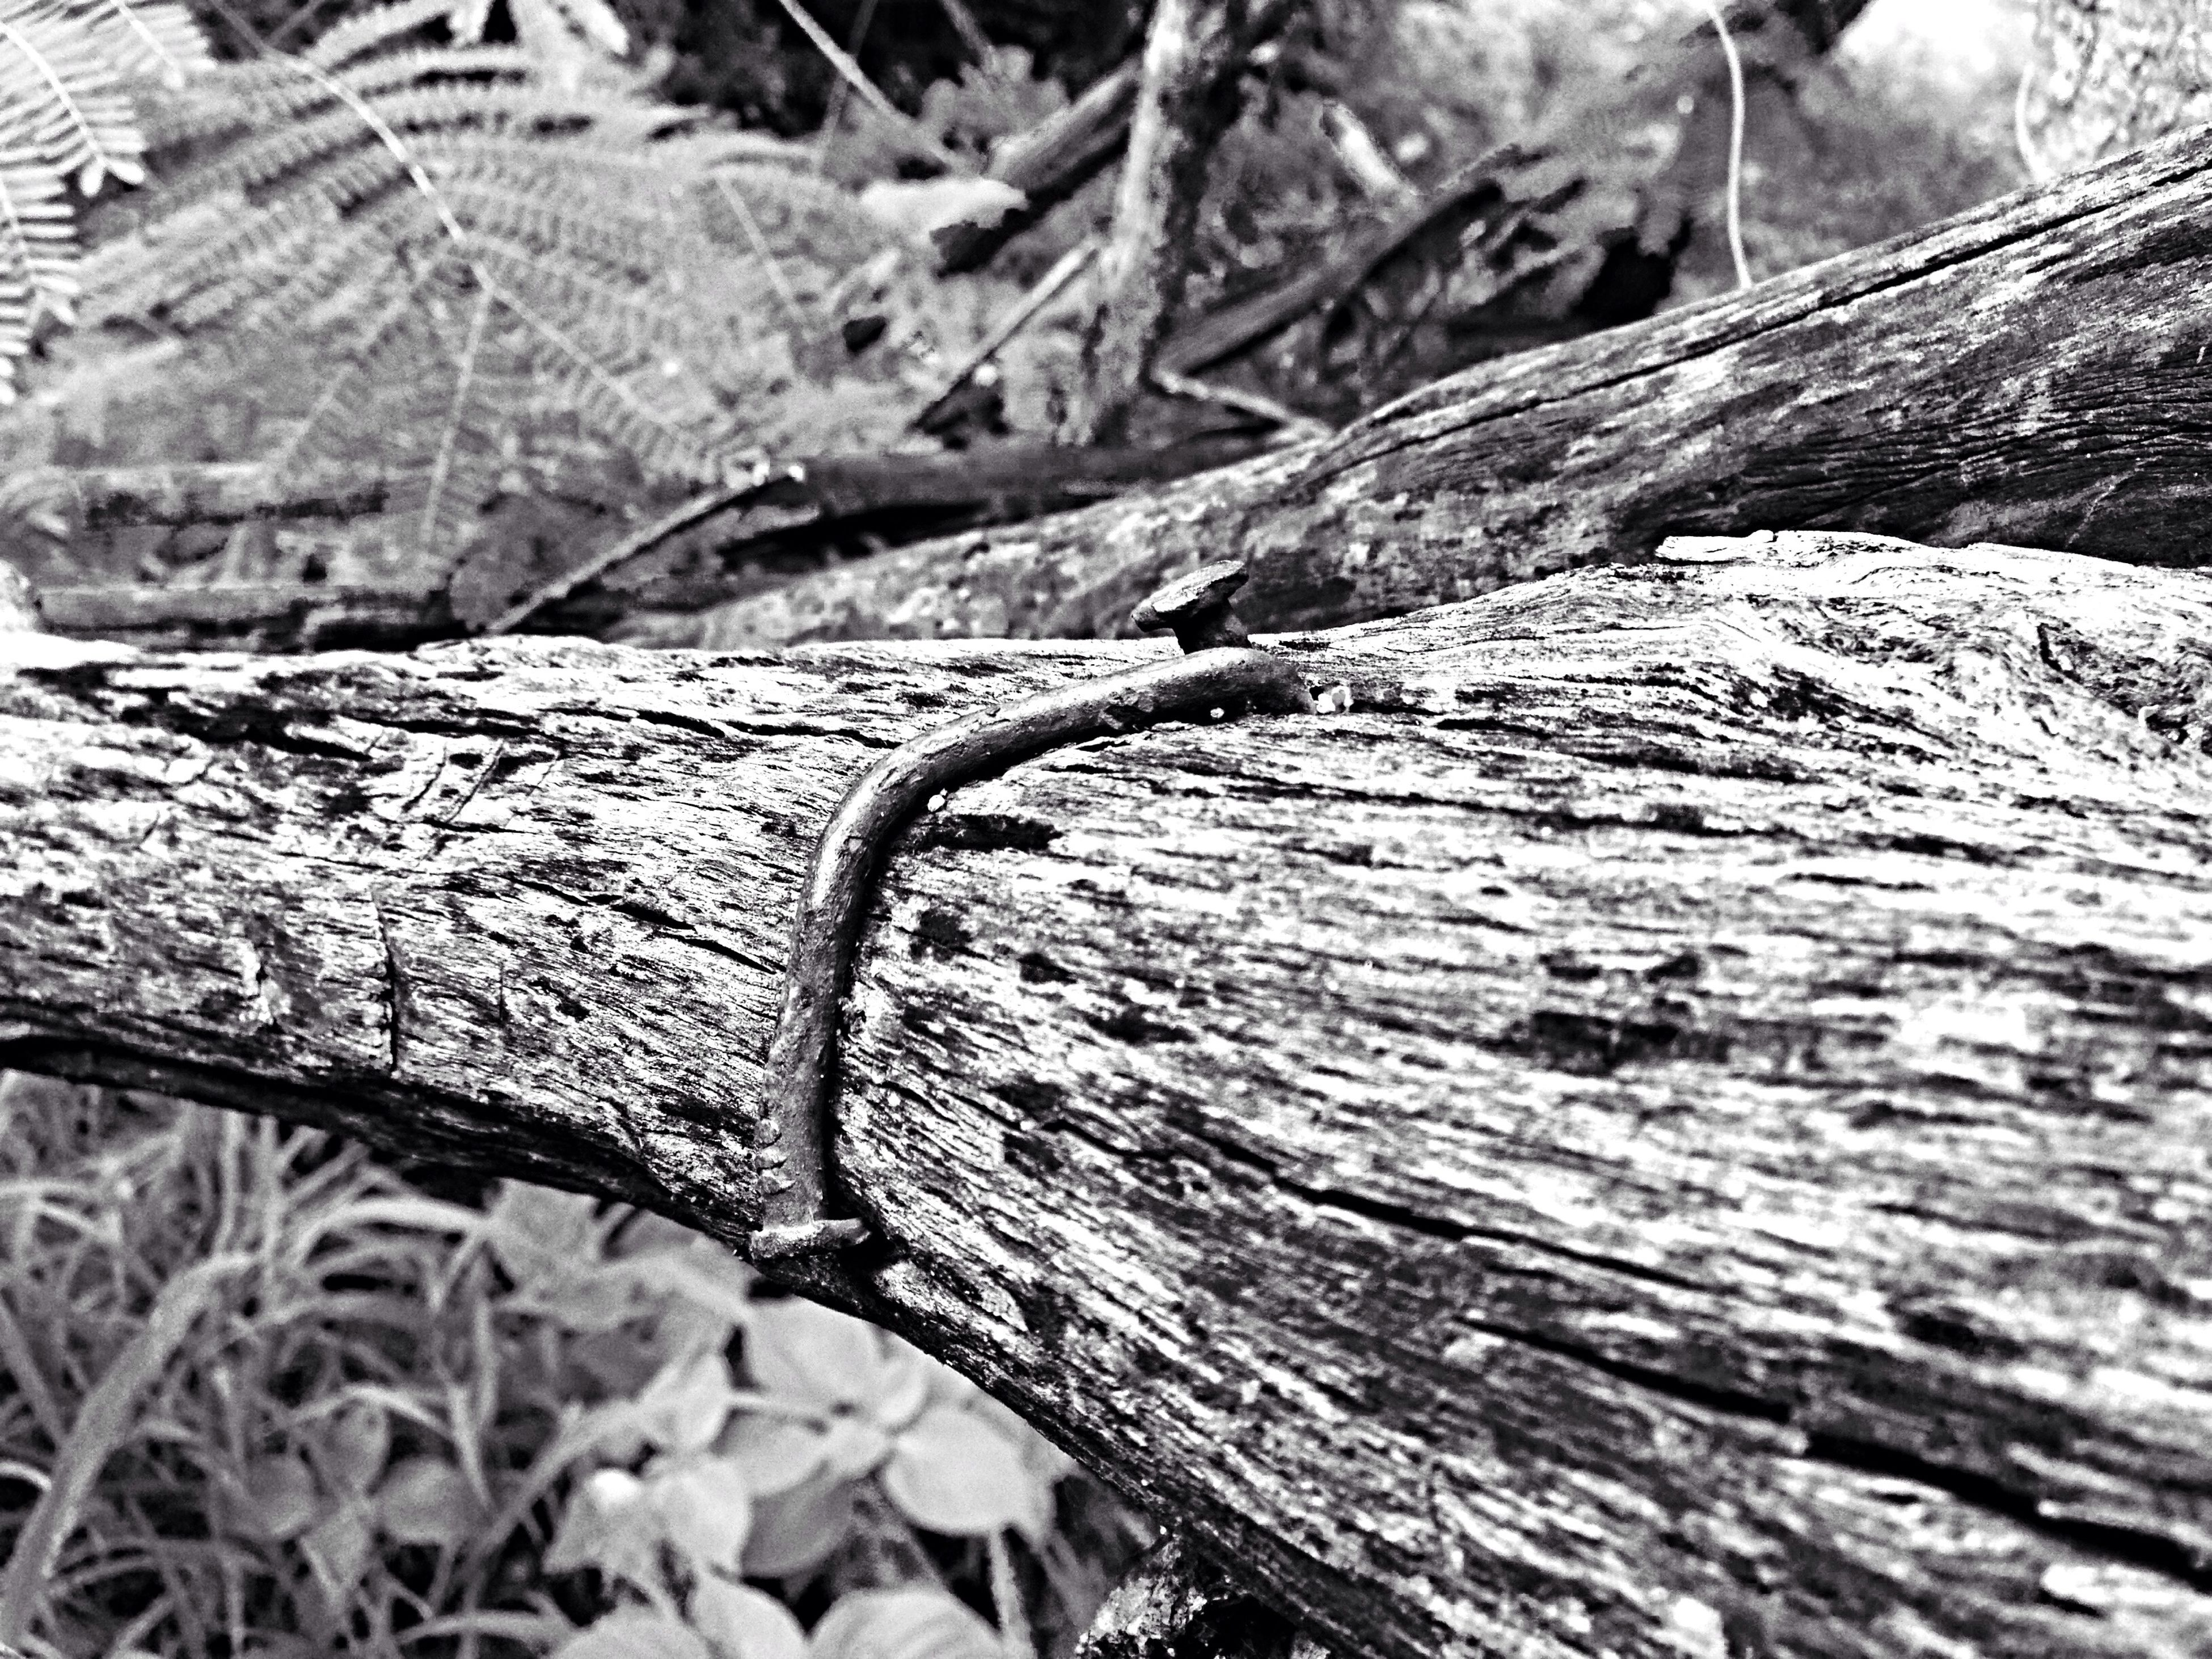 wood - material, textured, tree trunk, nature, tree, forest, close-up, tranquility, log, focus on foreground, outdoors, day, rough, wood, rock - object, natural pattern, tree stump, no people, dry, beauty in nature